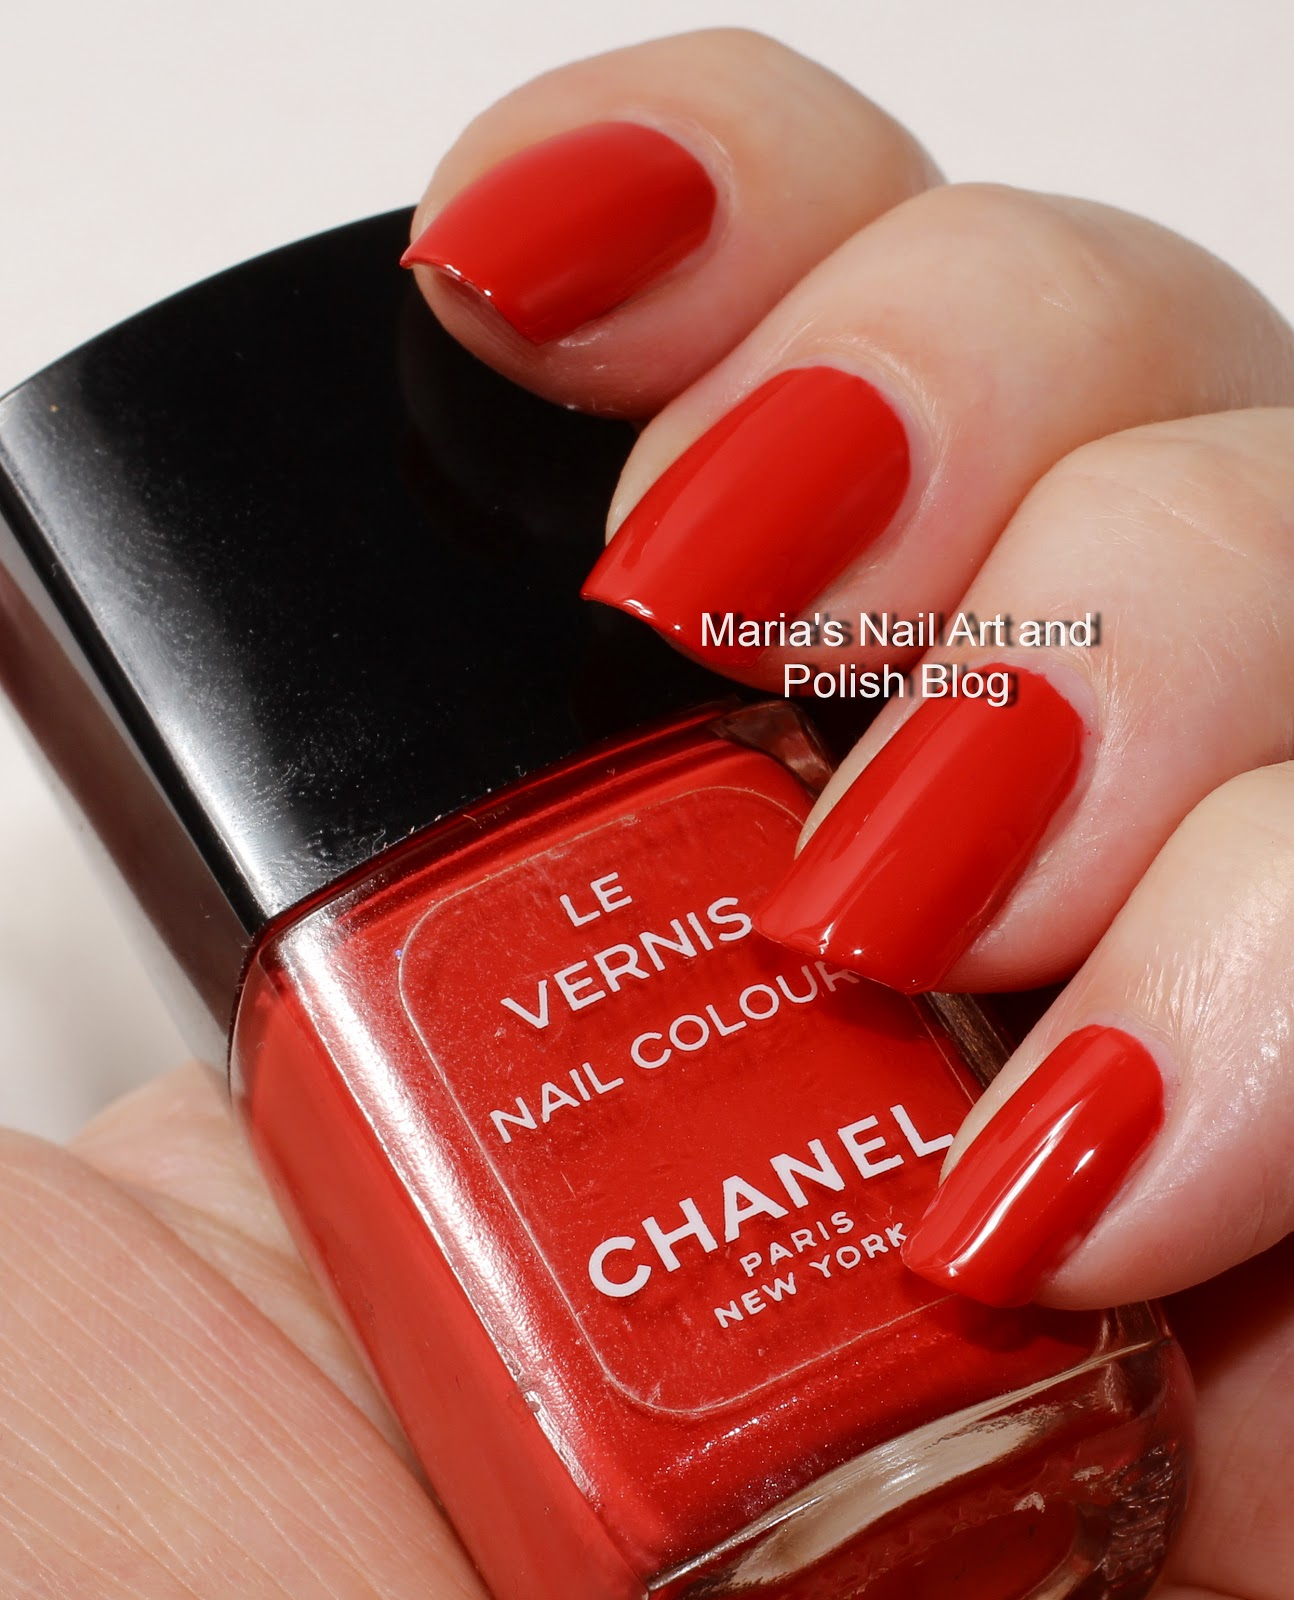 Marias Nail Art And Polish Blog Flushed With Stripes And: Marias Nail Art And Polish Blog: Chanel Corail